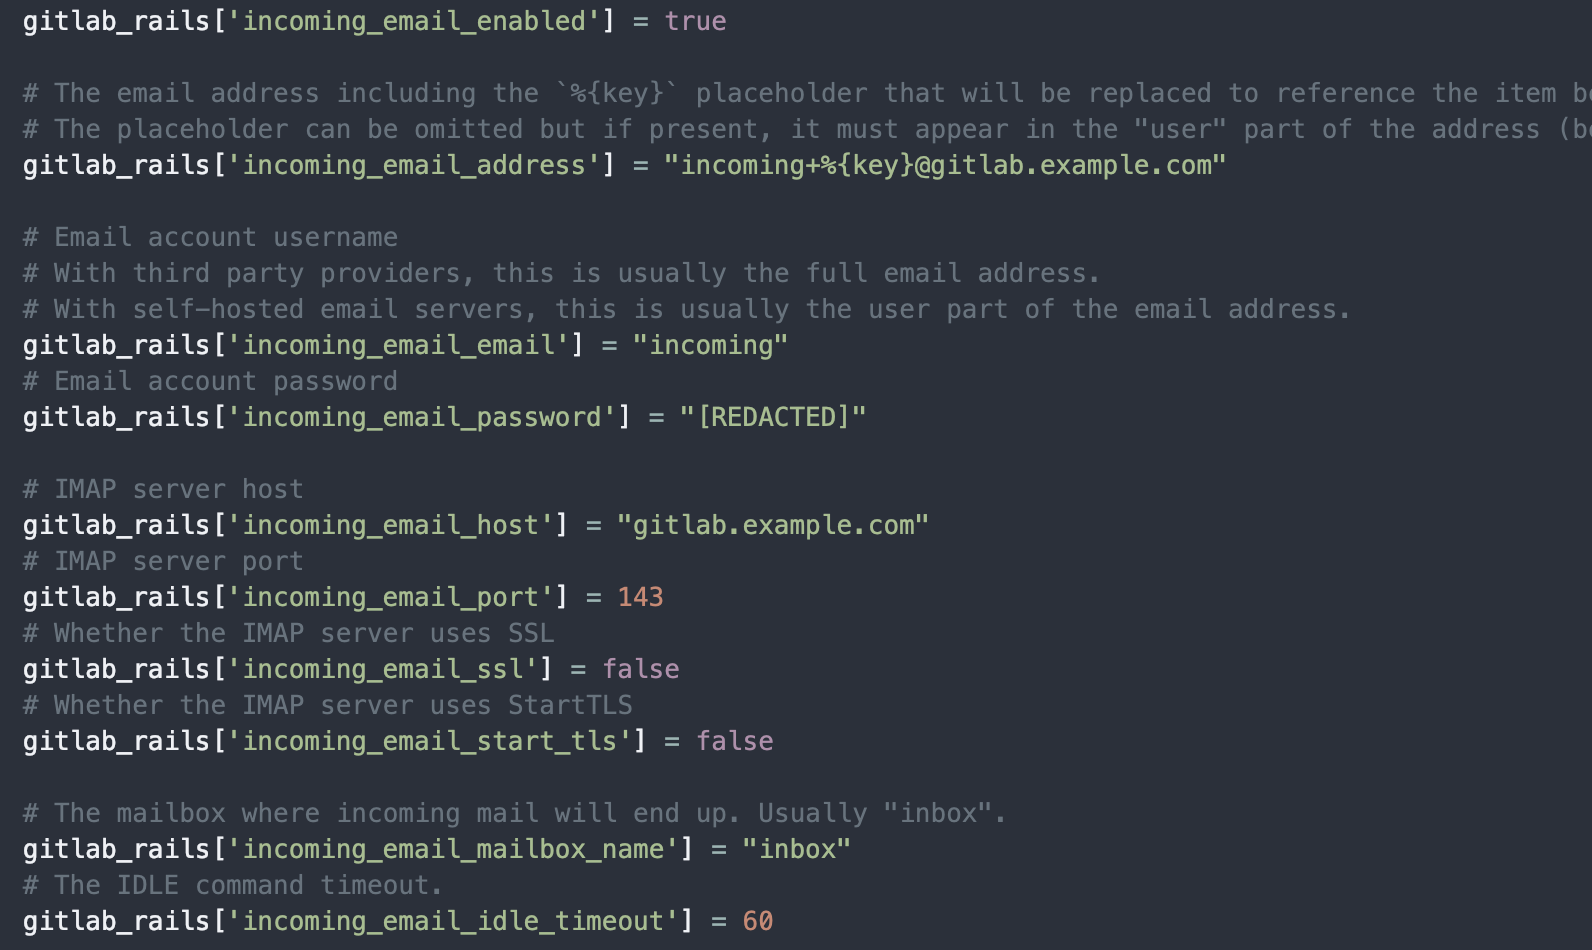 source/images/feature_page/screenshots/sub-addressing-email-servers.png